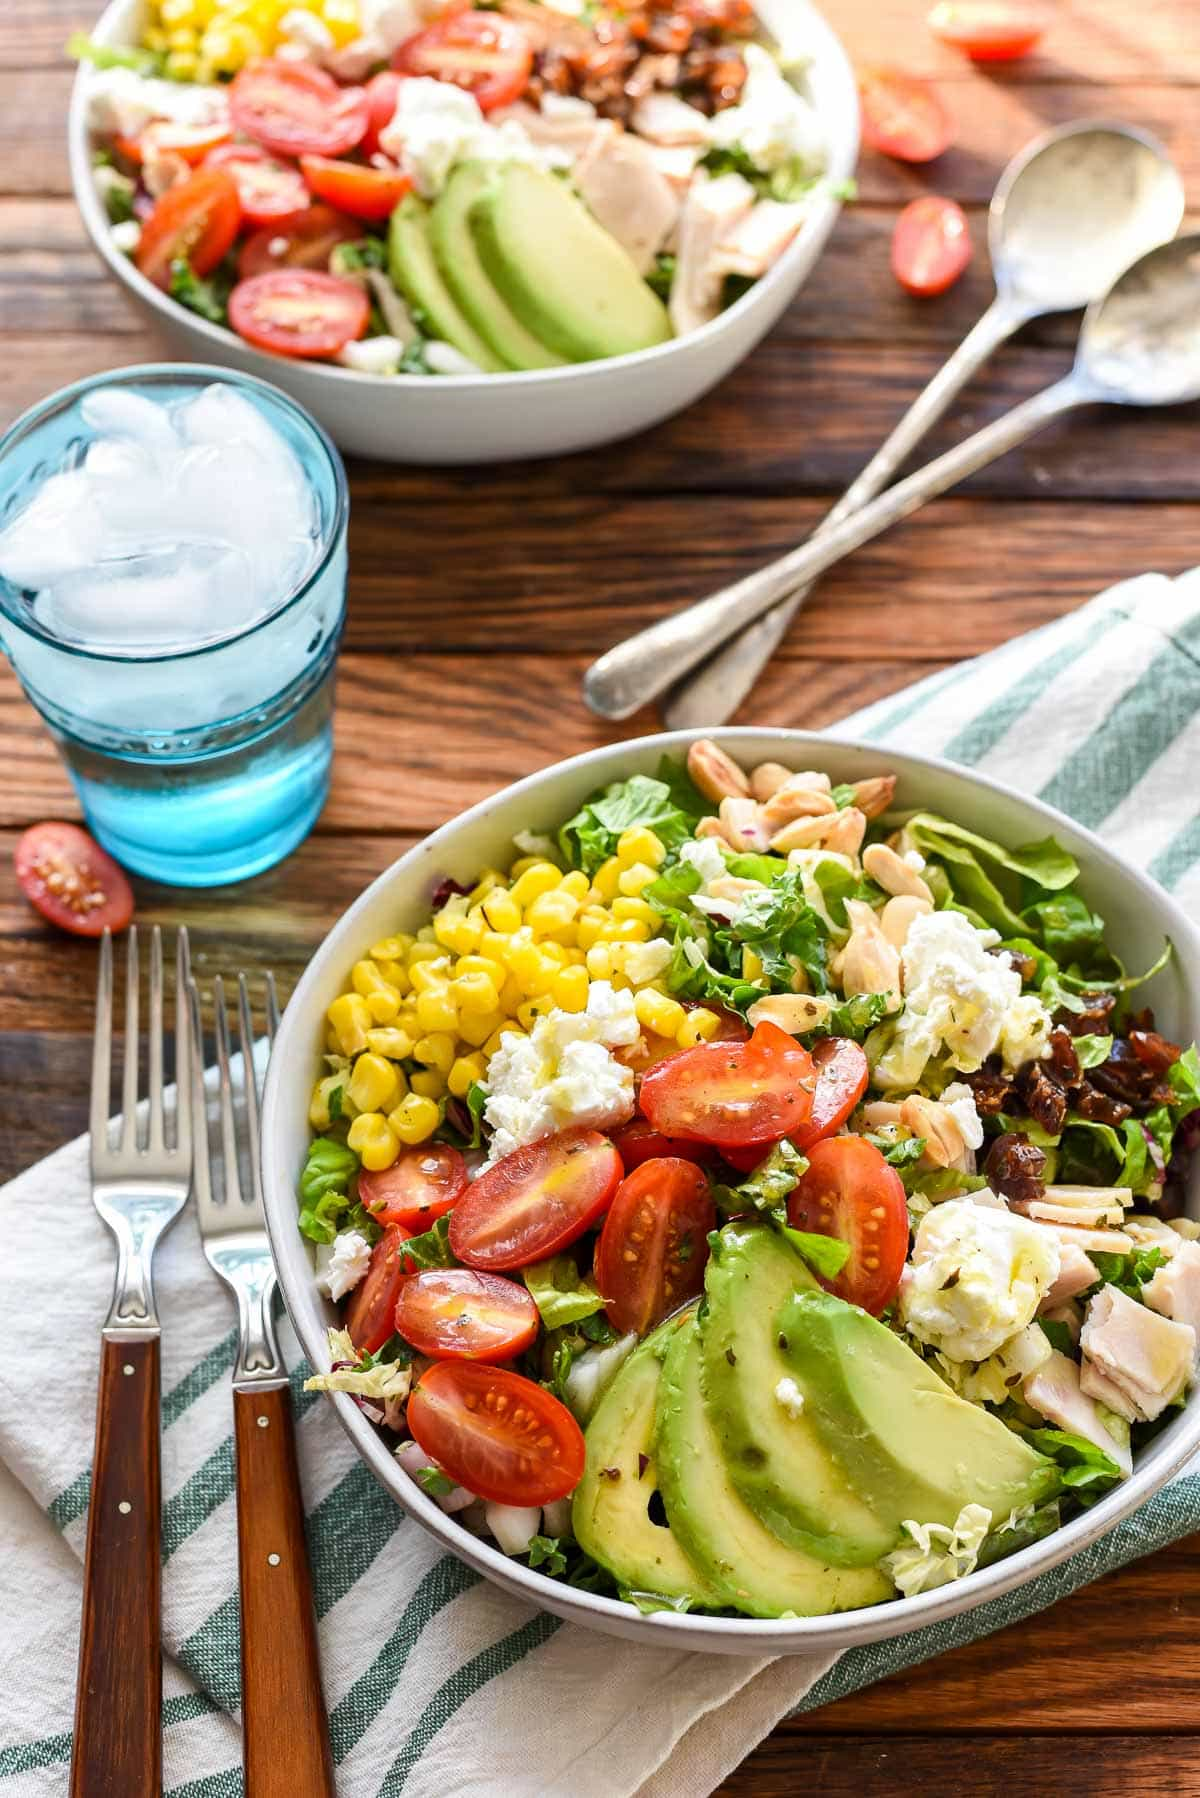 This Chopped Salad is loaded with avocado, dates, goat cheese, corn, and tomatoes for a filling, flavor packed meal!